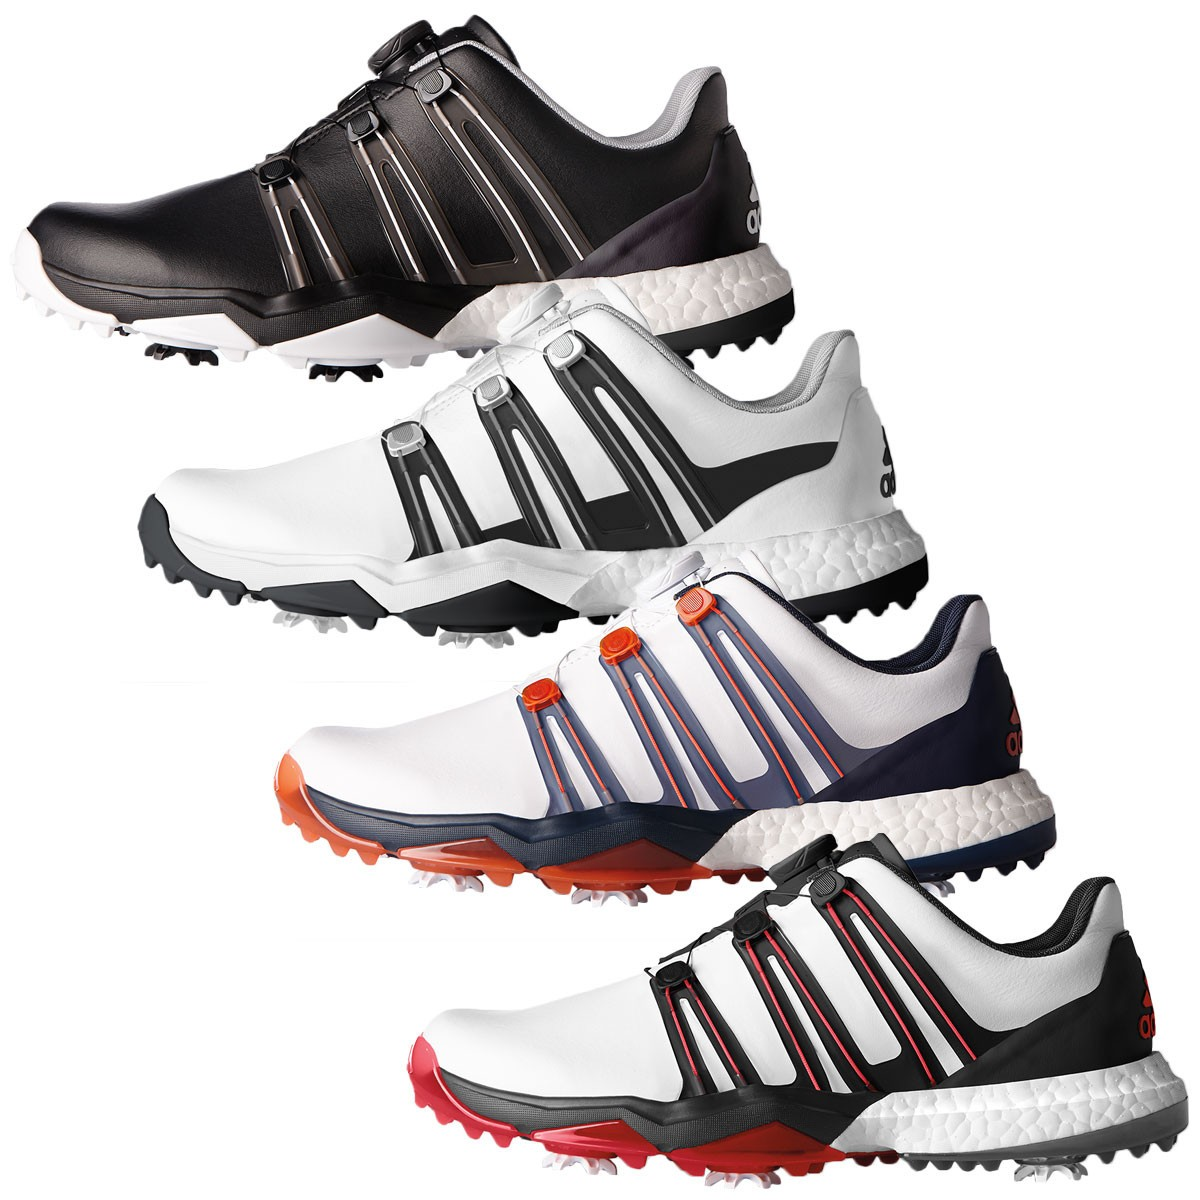 Adidas Powerband Golf Shoes Review